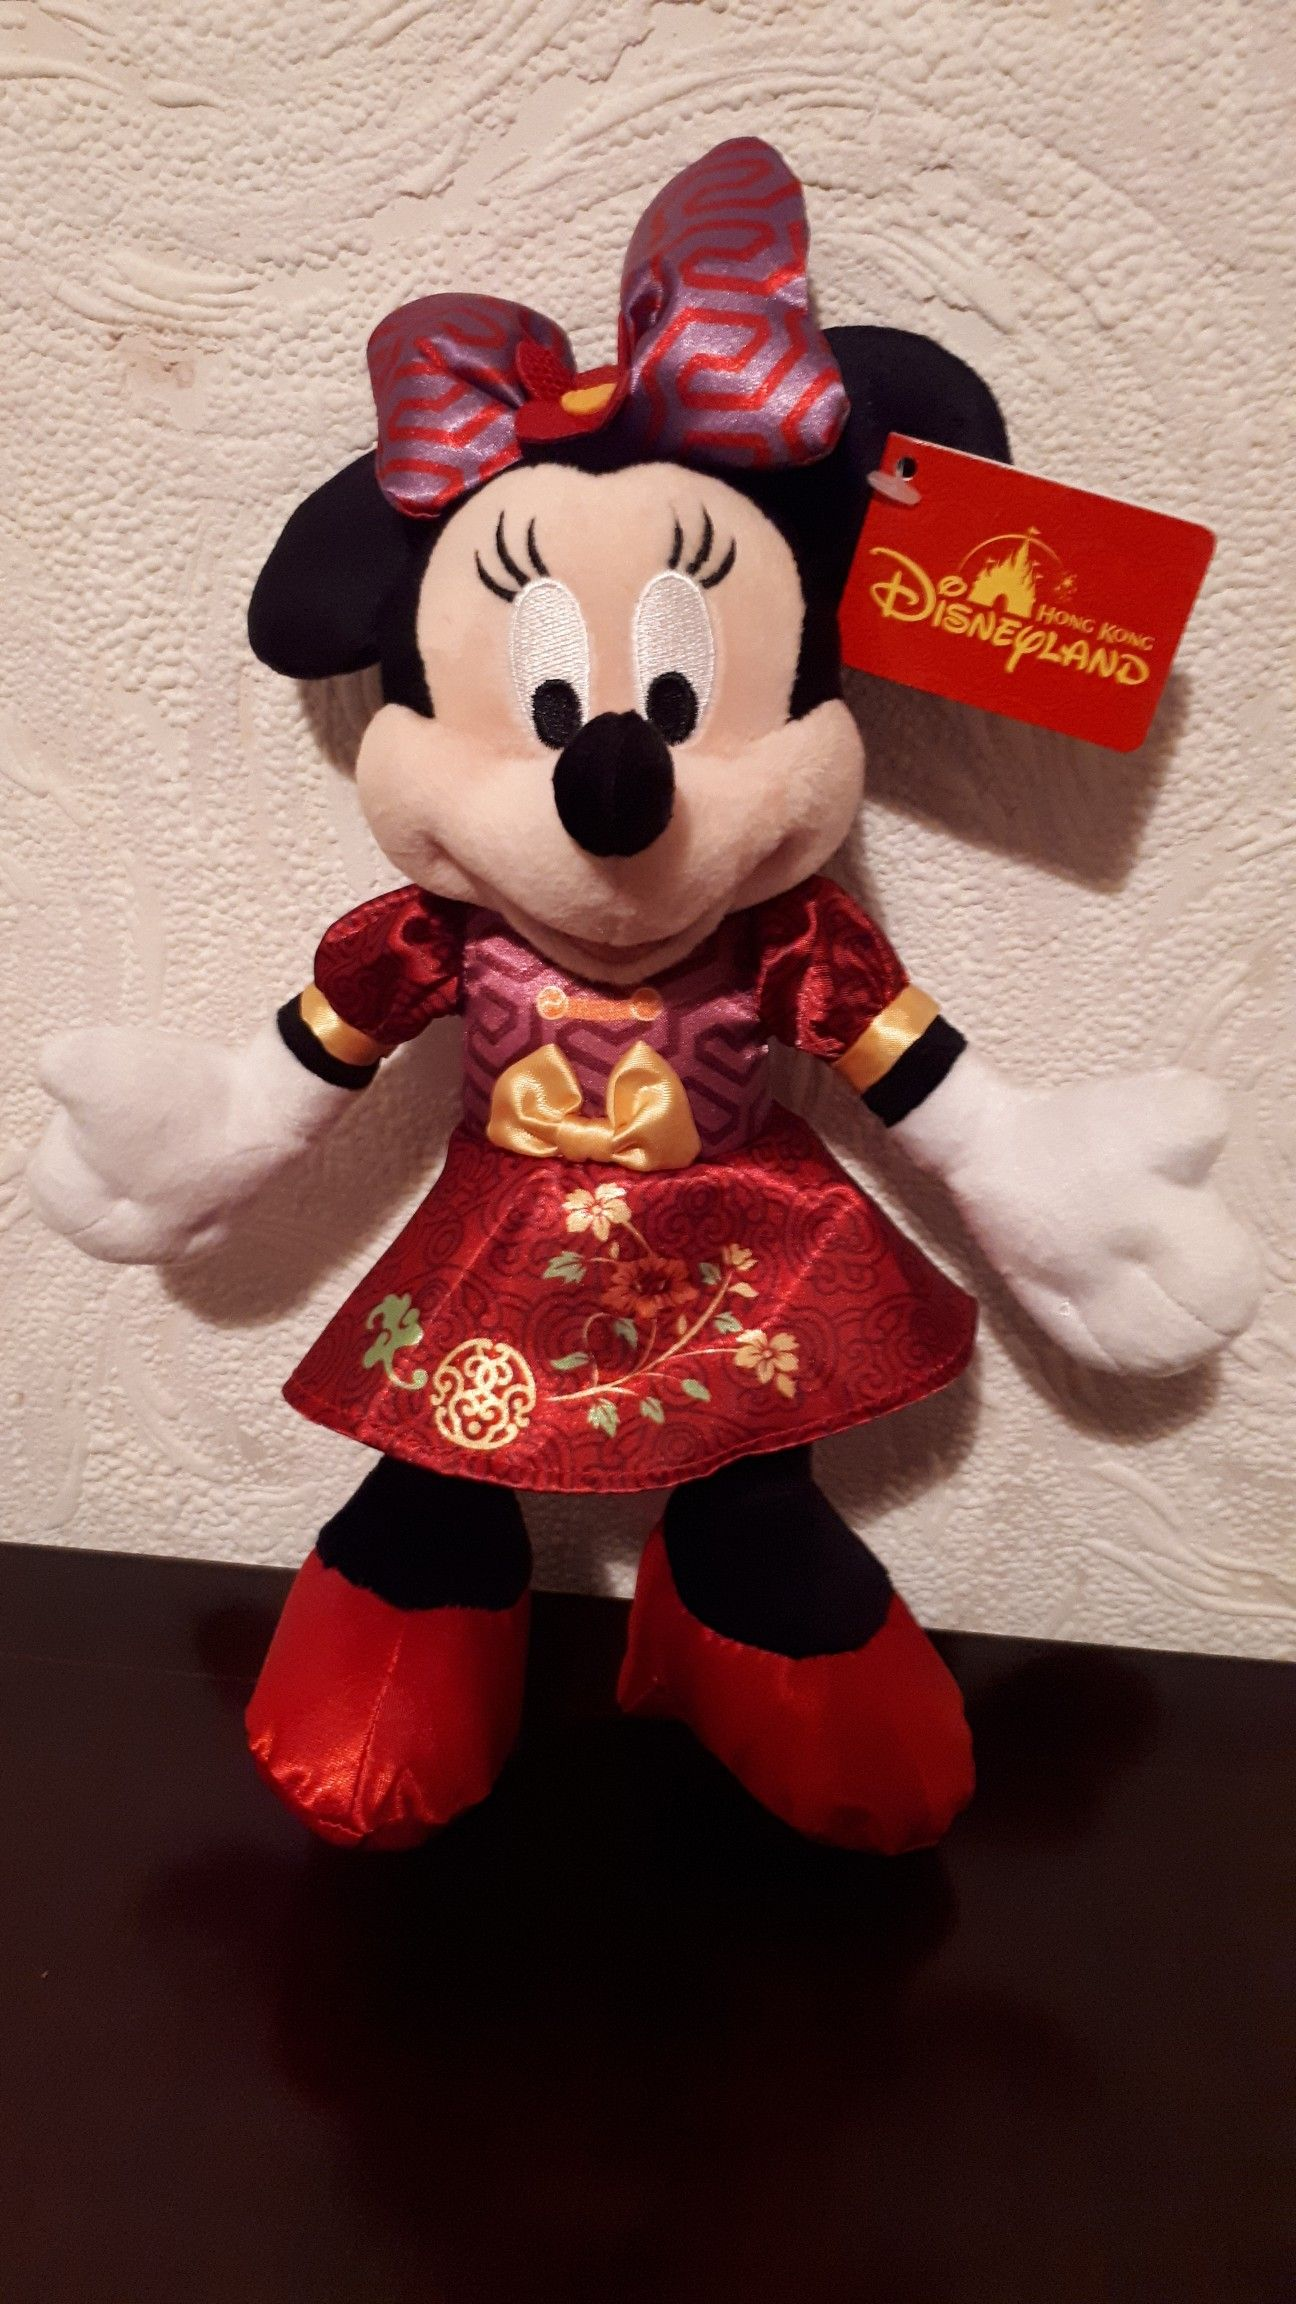 Hong Kong Disneyland Chinese New Year Minnie 2018 Mickey Mouse And Friends Disney Shop Teddy Bear Collection